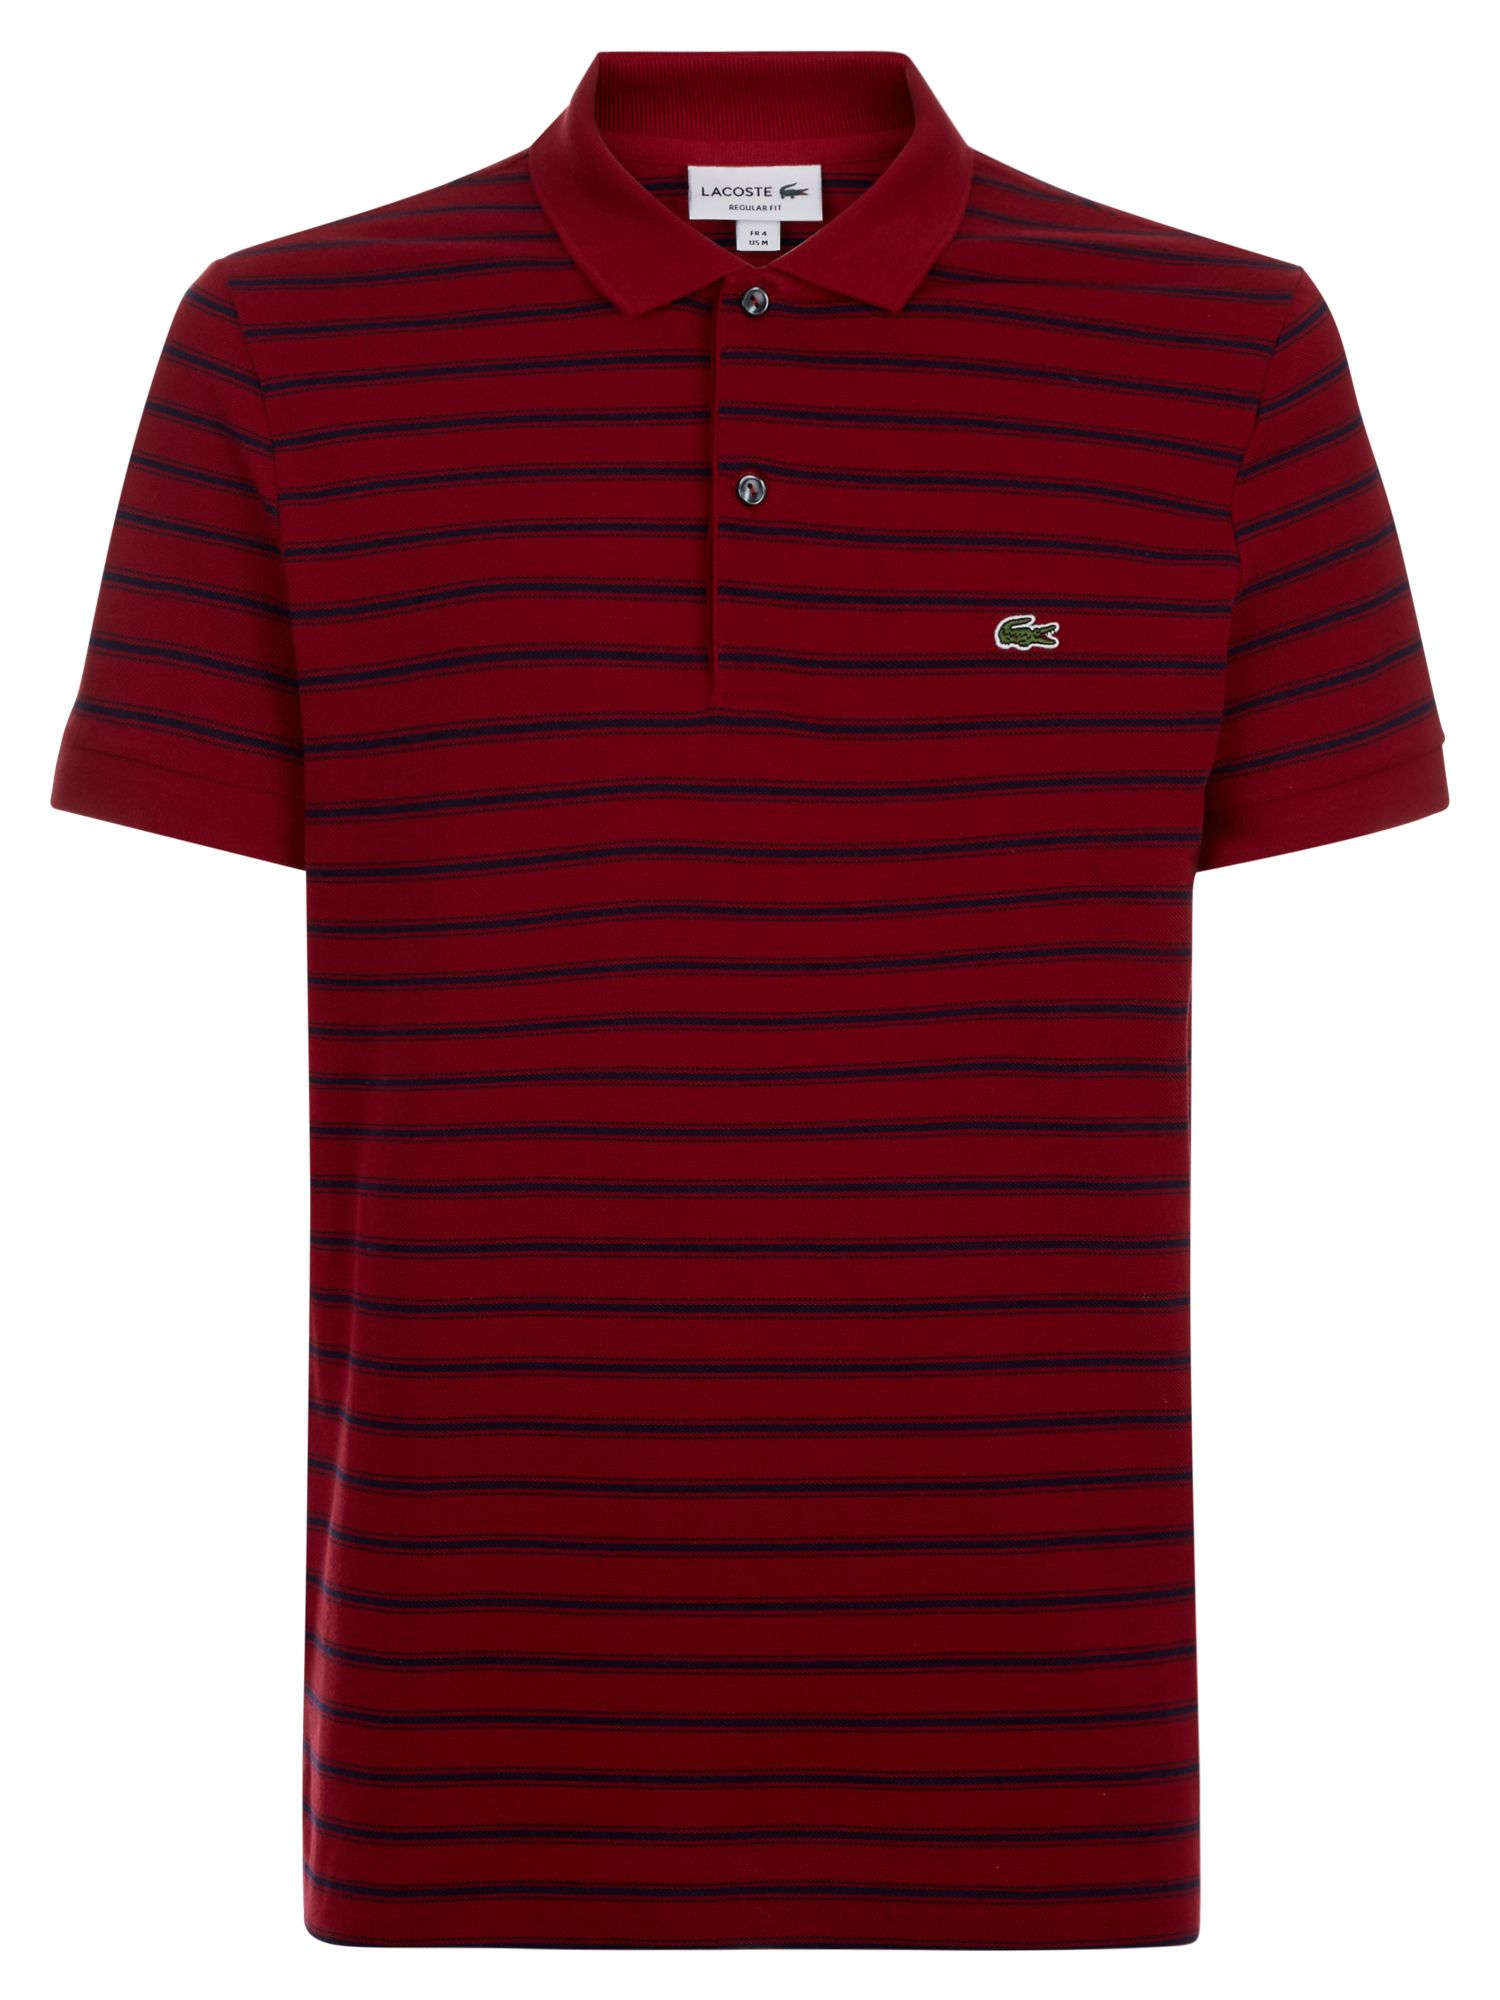 Men's Lacoste Stripped Polo, Turkey Red